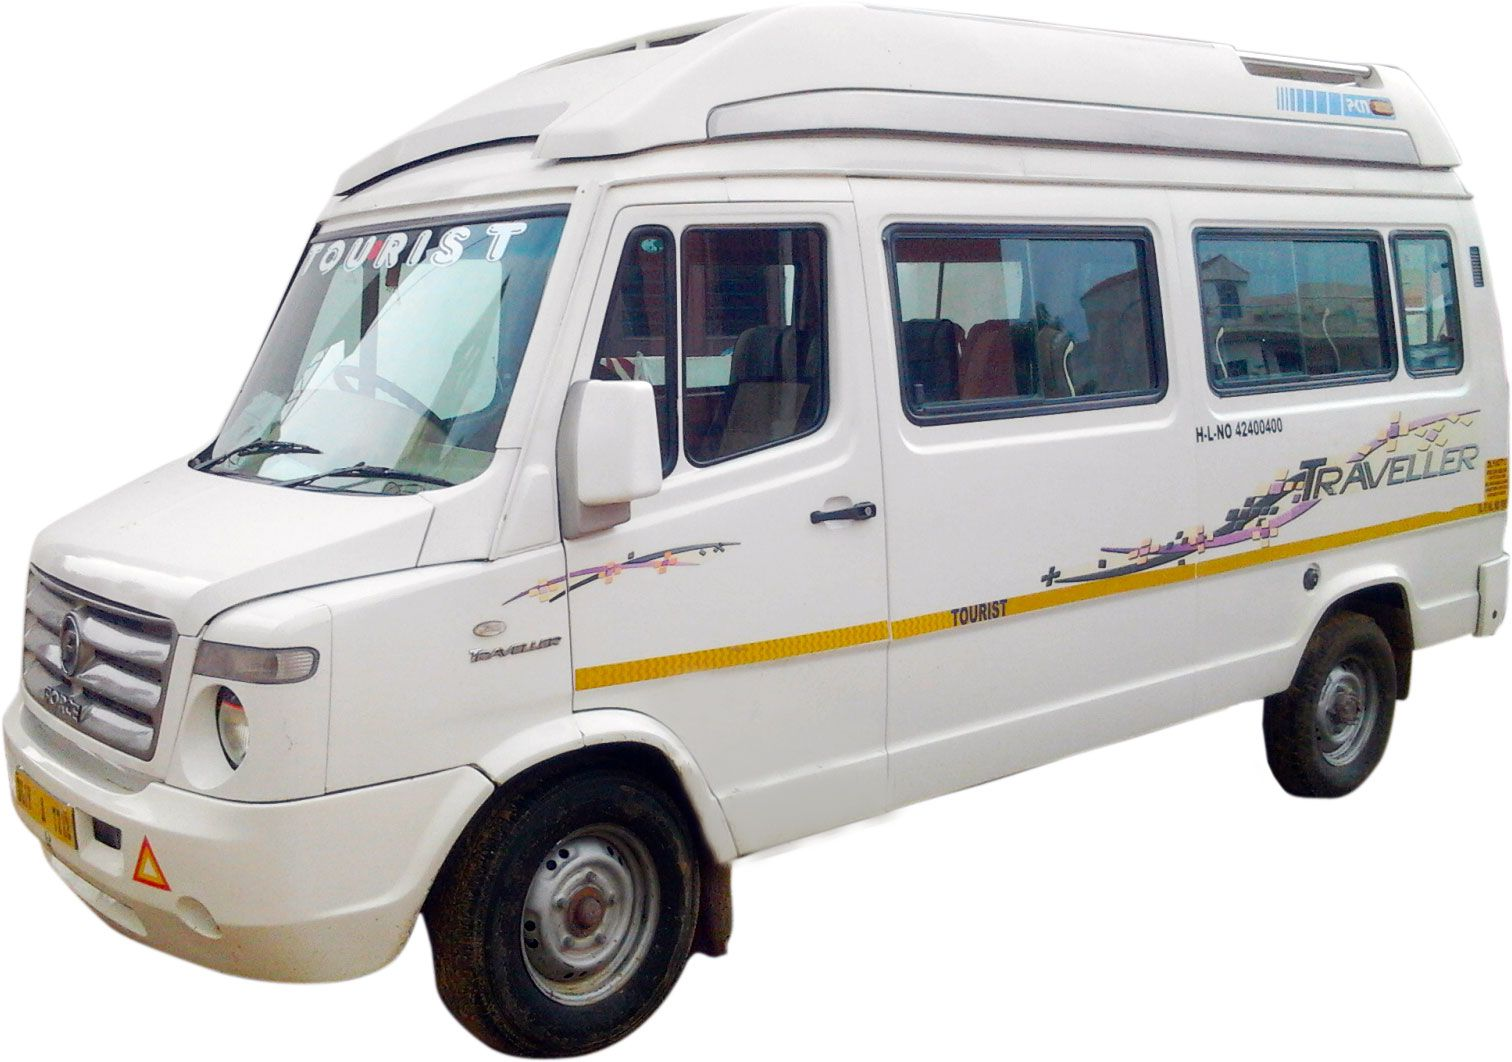 Tempo Traveller for Orchha in madhya pradesh Video games